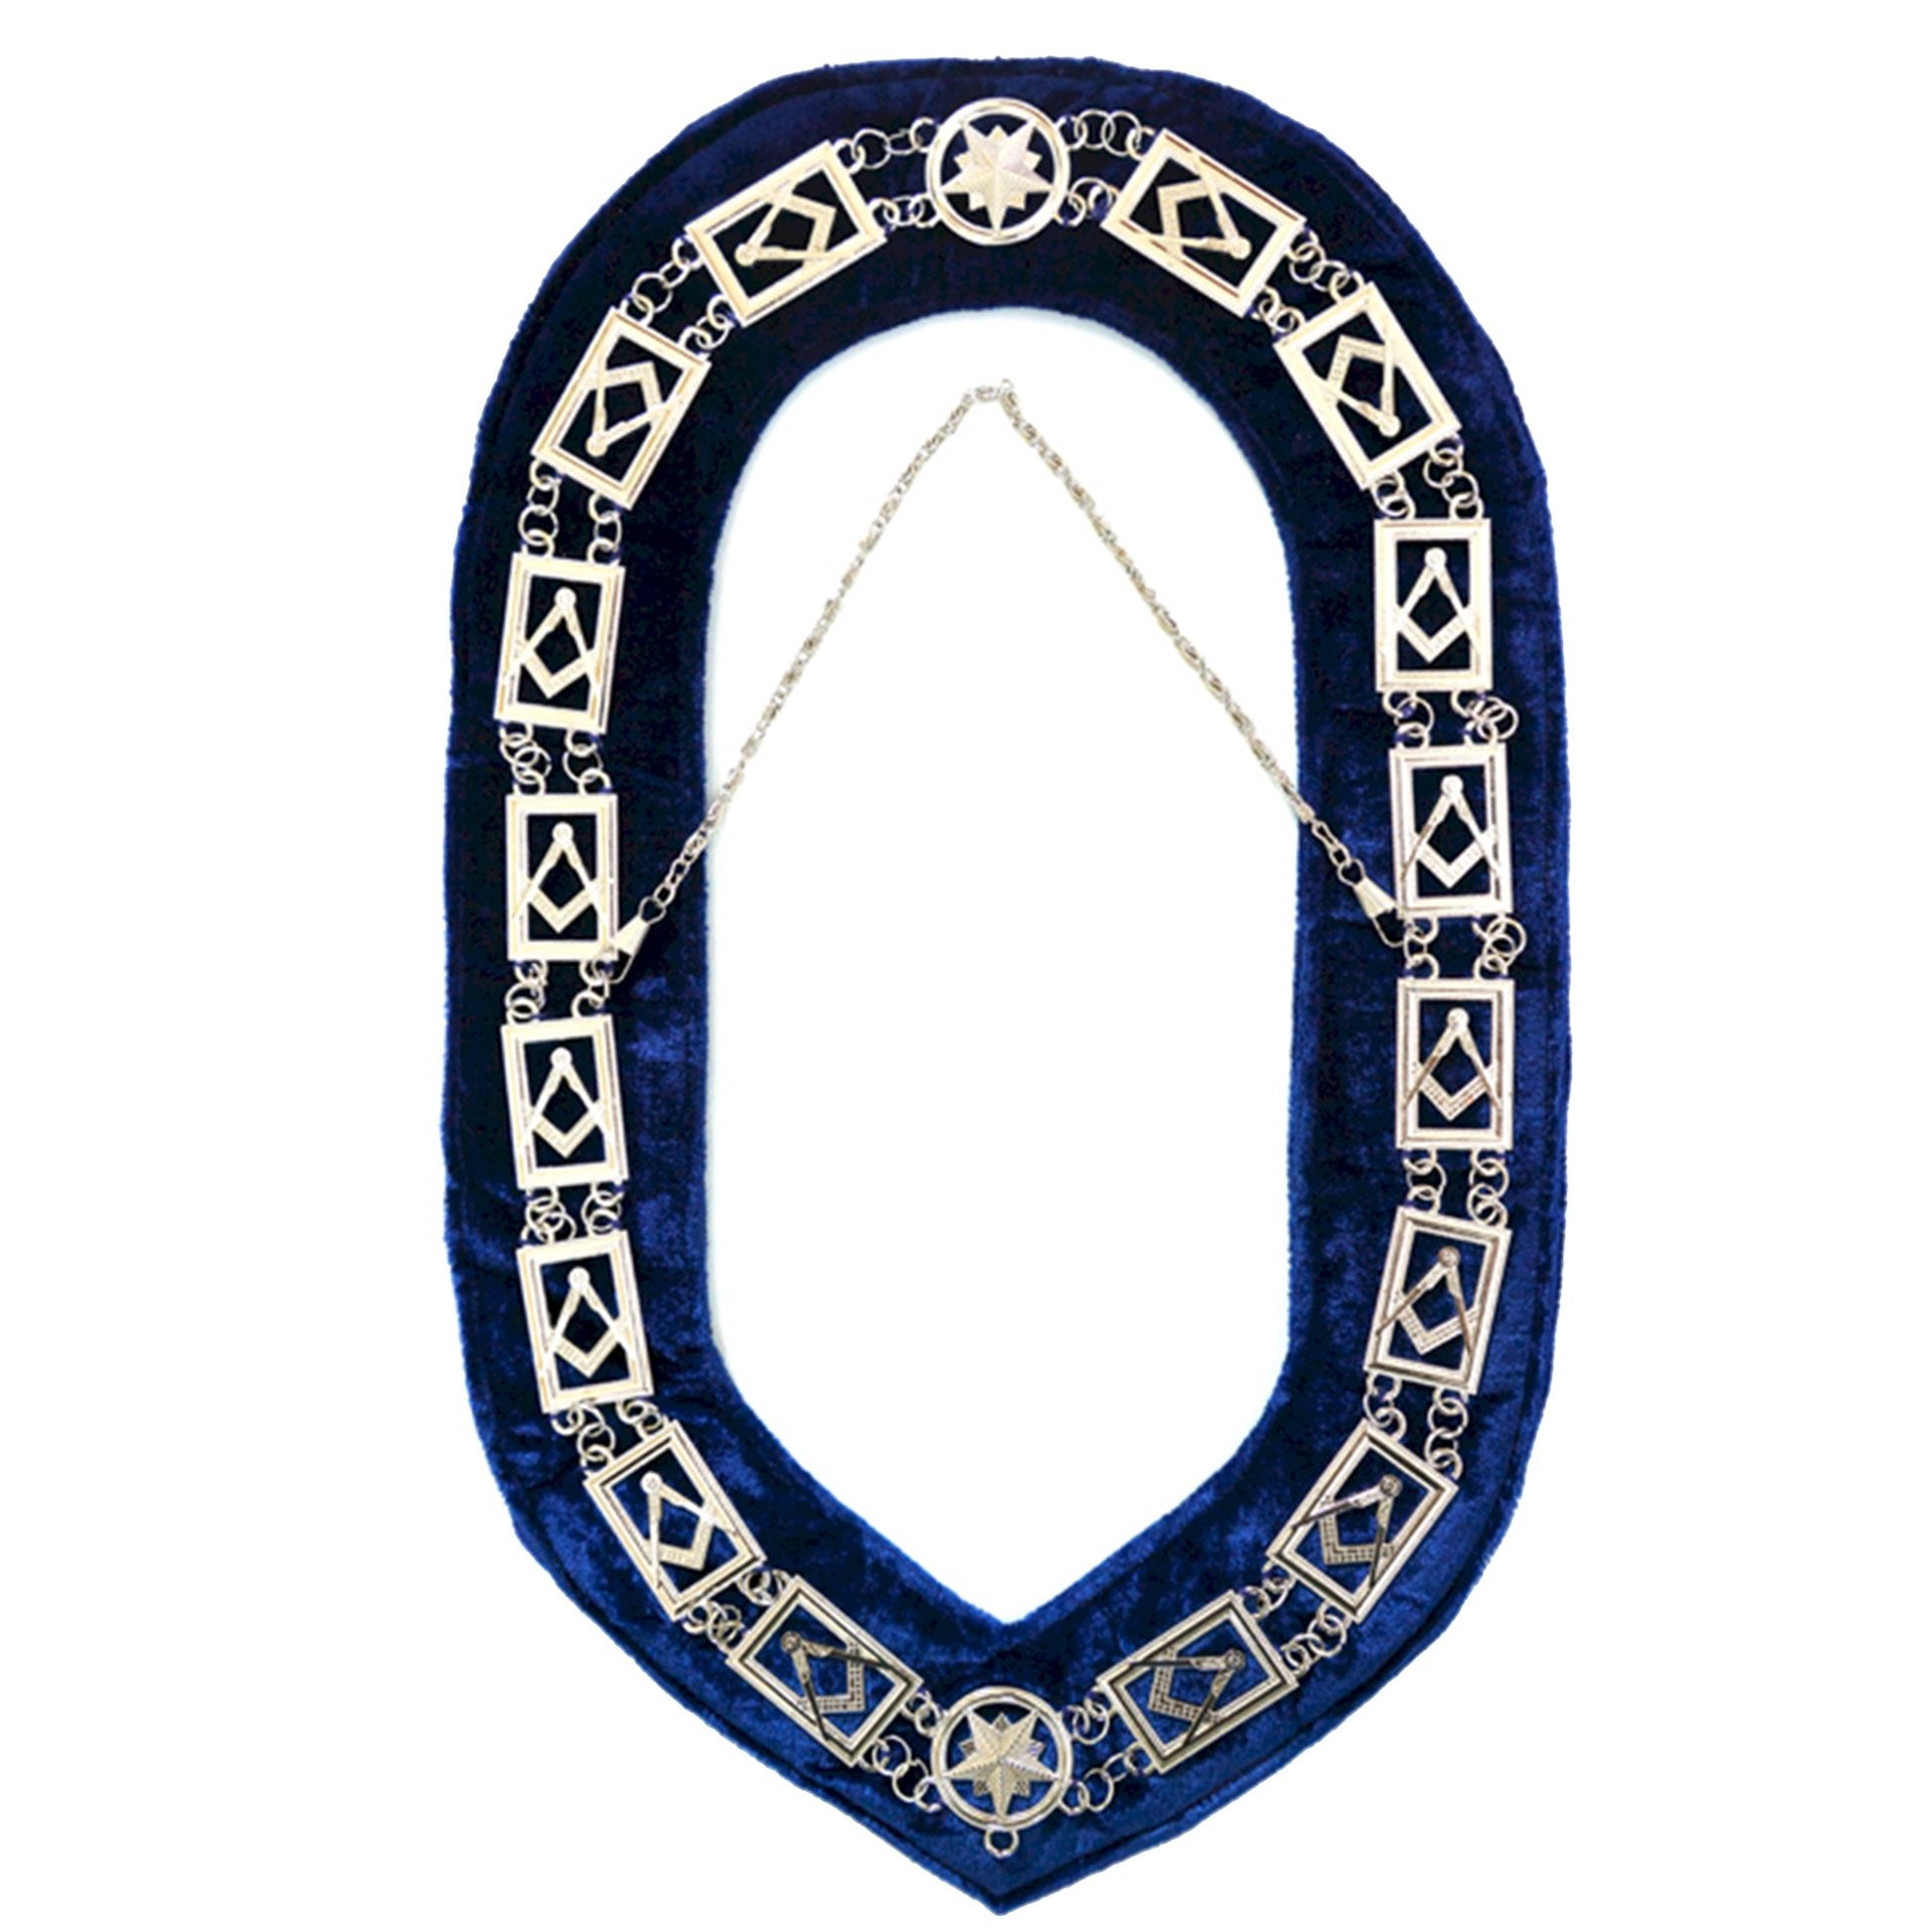 Blue Lodge Square Compass Chain Collar - Gold/Silver on Blue + Free Case - Bricks Masons